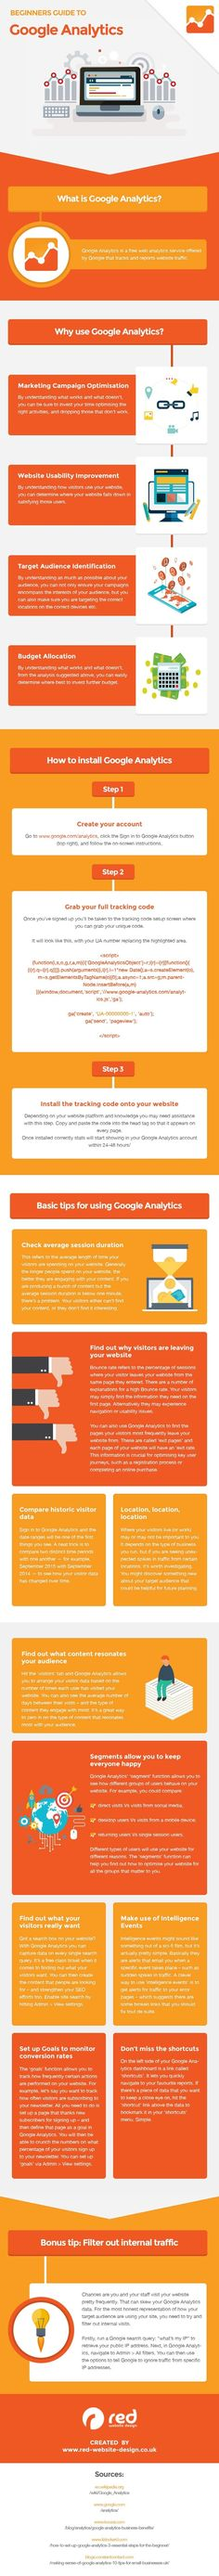 How to Use Google Analytics to Track Your Website Visitors - #Infographic